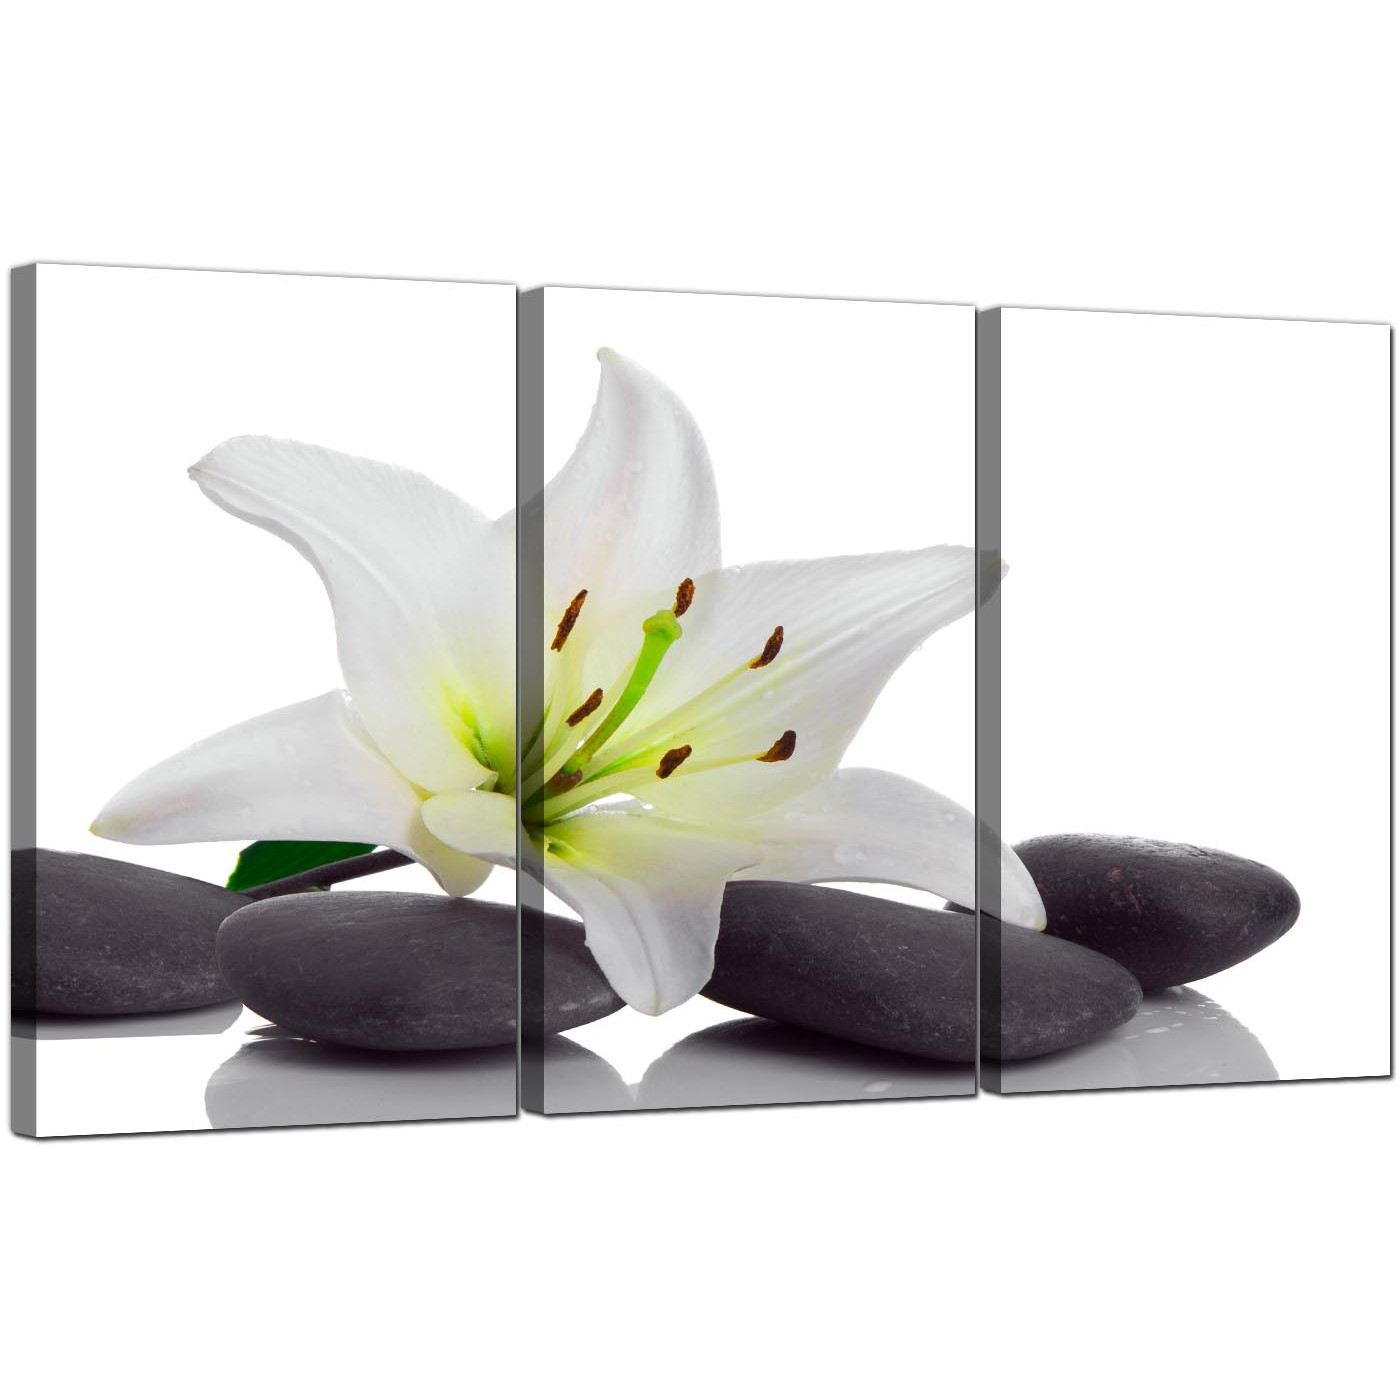 Display Gallery Item 5 3 Panel Flowers Canvas Wall Art Lily And Pebbles 3024 Display Gallery Item 6